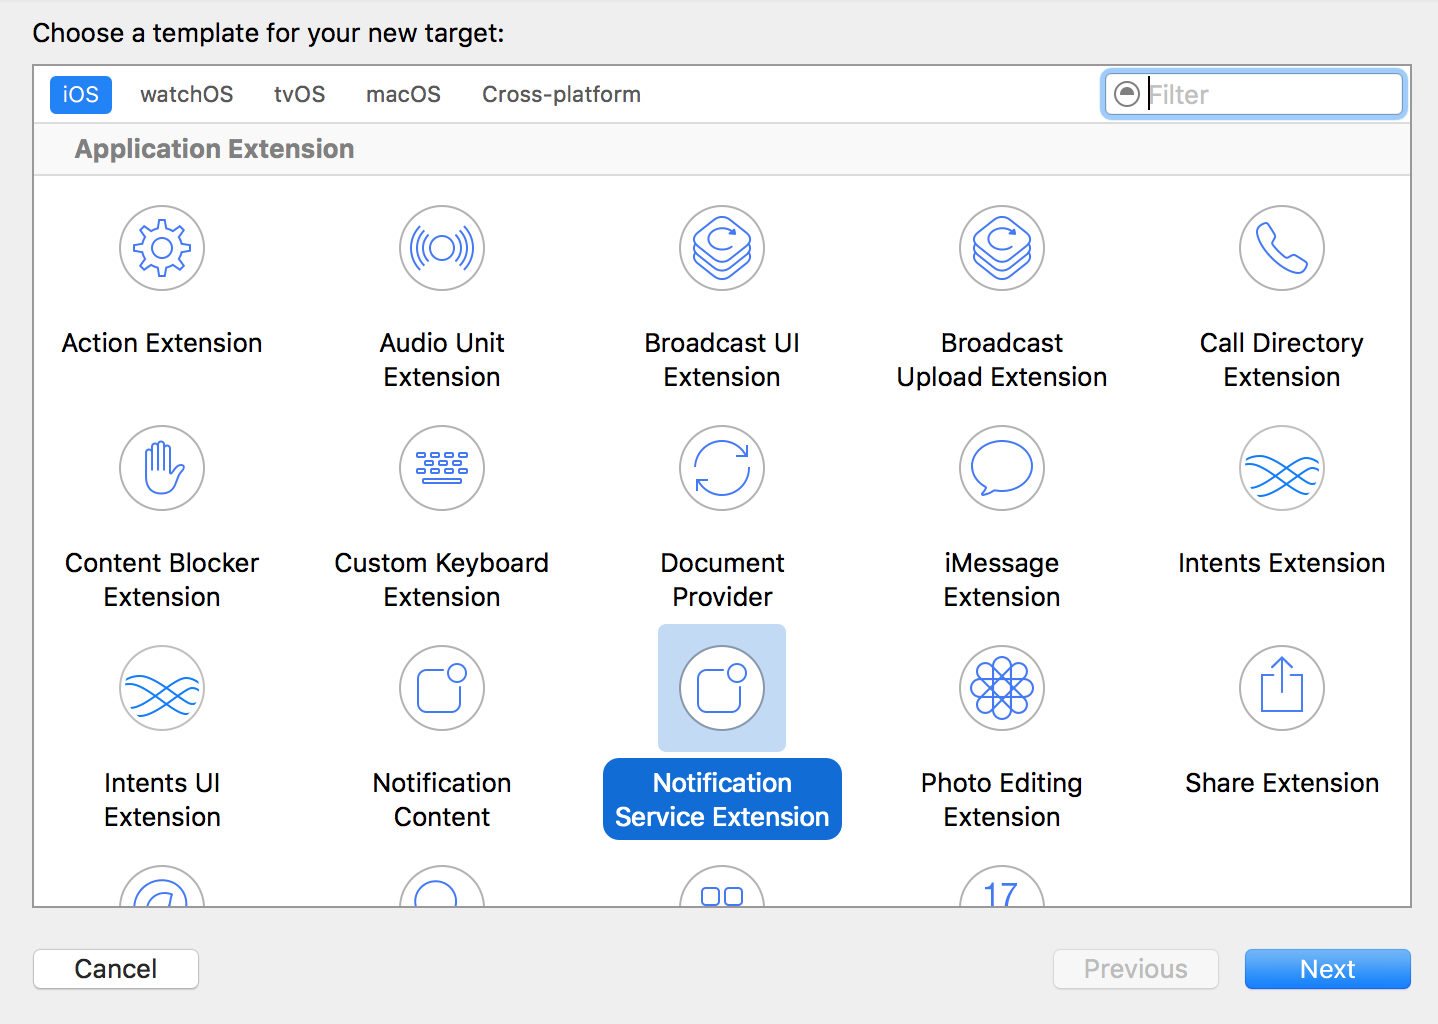 notification service extension